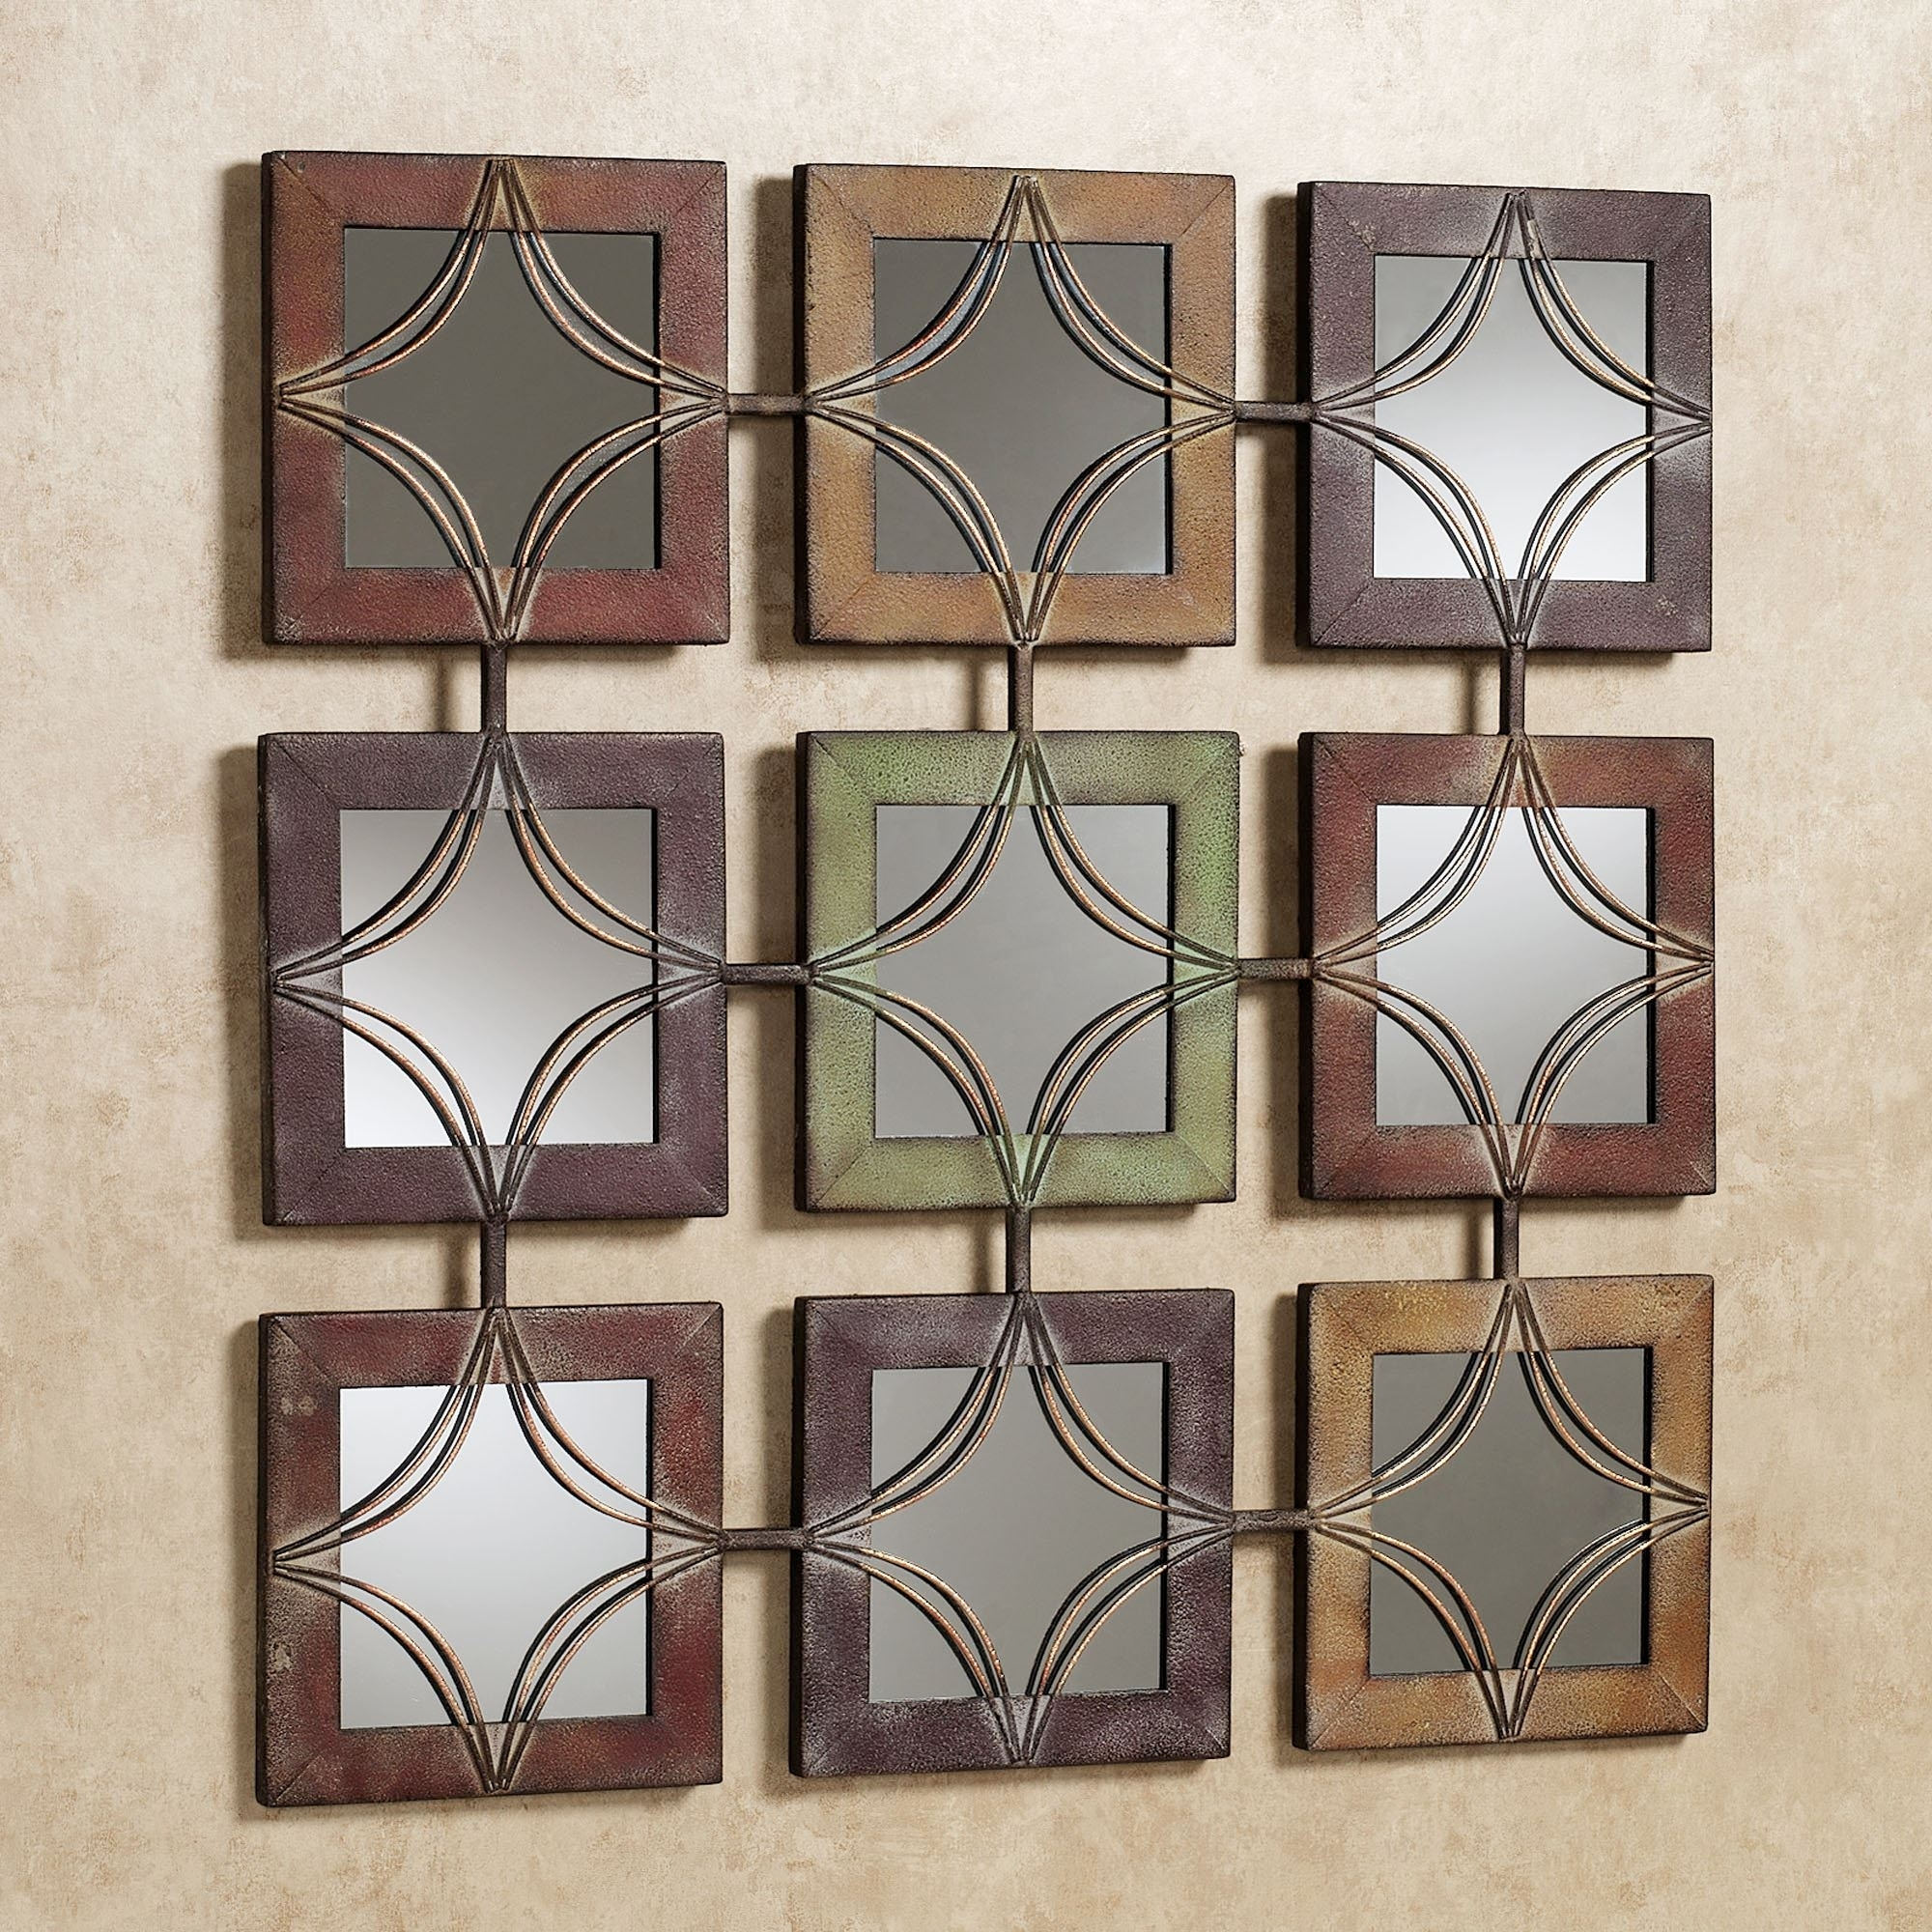 Domini Mirrored Metal Wall Art Inside Latest Metal Wall Accents (View 3 of 15)